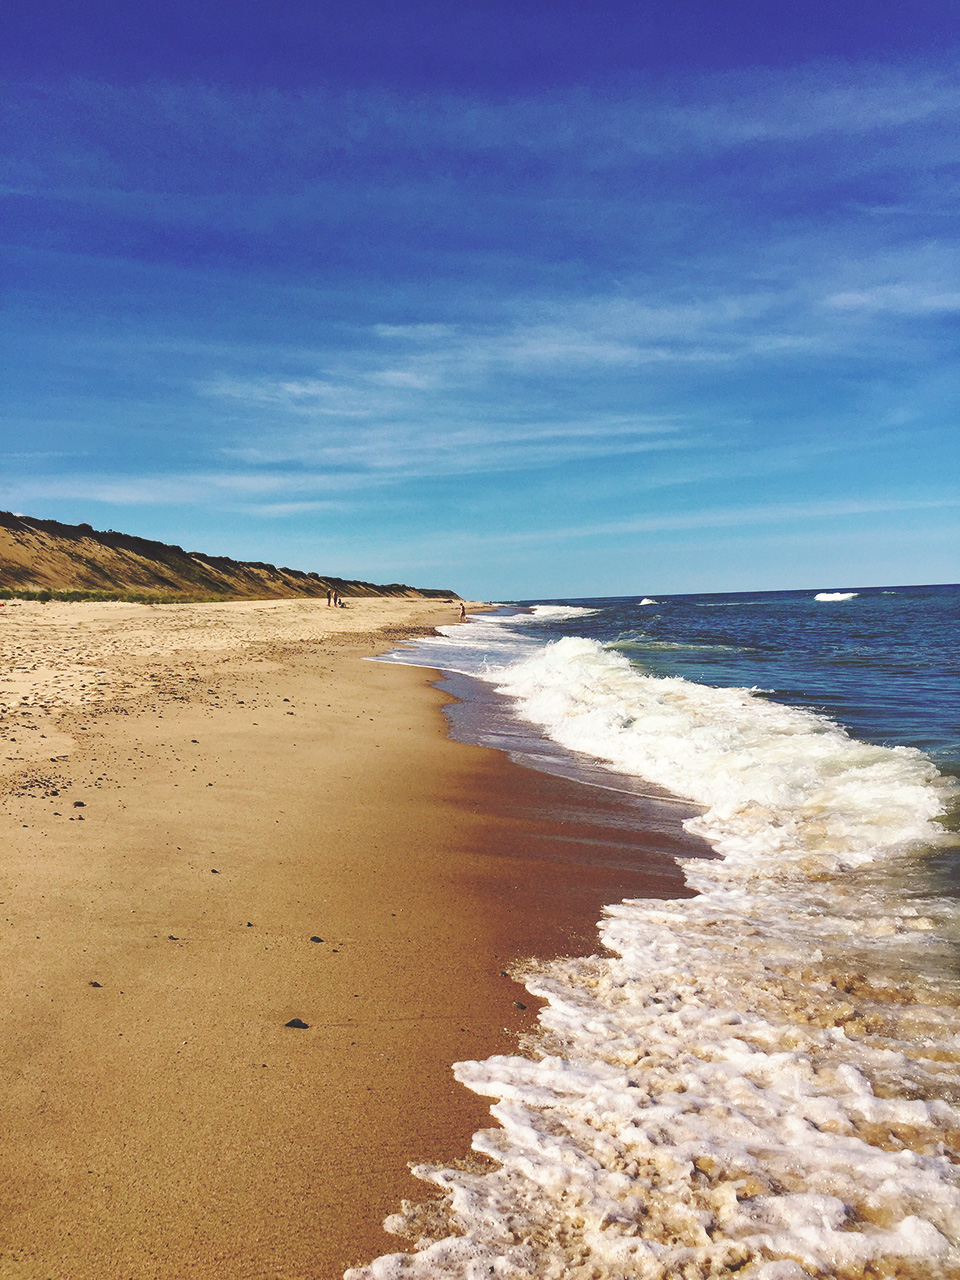 Marconi Beach in Cape Cod